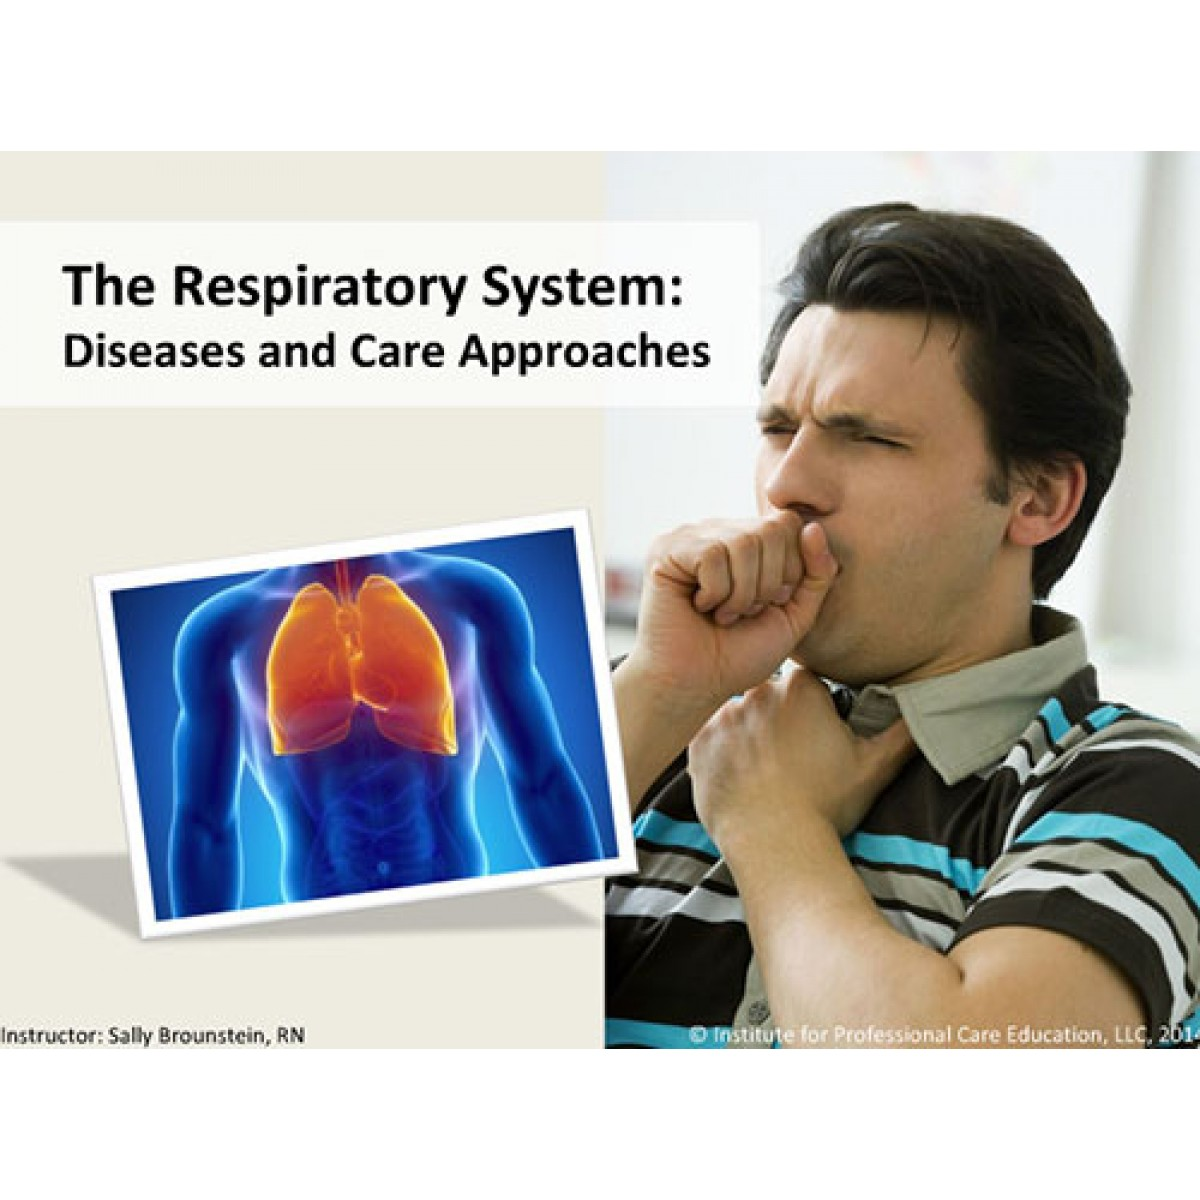 The Respiratory System  Aquire™ Training Solutions. Plaques Signs. Age Signs. Insurance Signs Of Stroke. Remission Signs. Flash Card Signs Of Stroke. Celebrating Signs. Refill Station Signs Of Stroke. Wash Only Signs